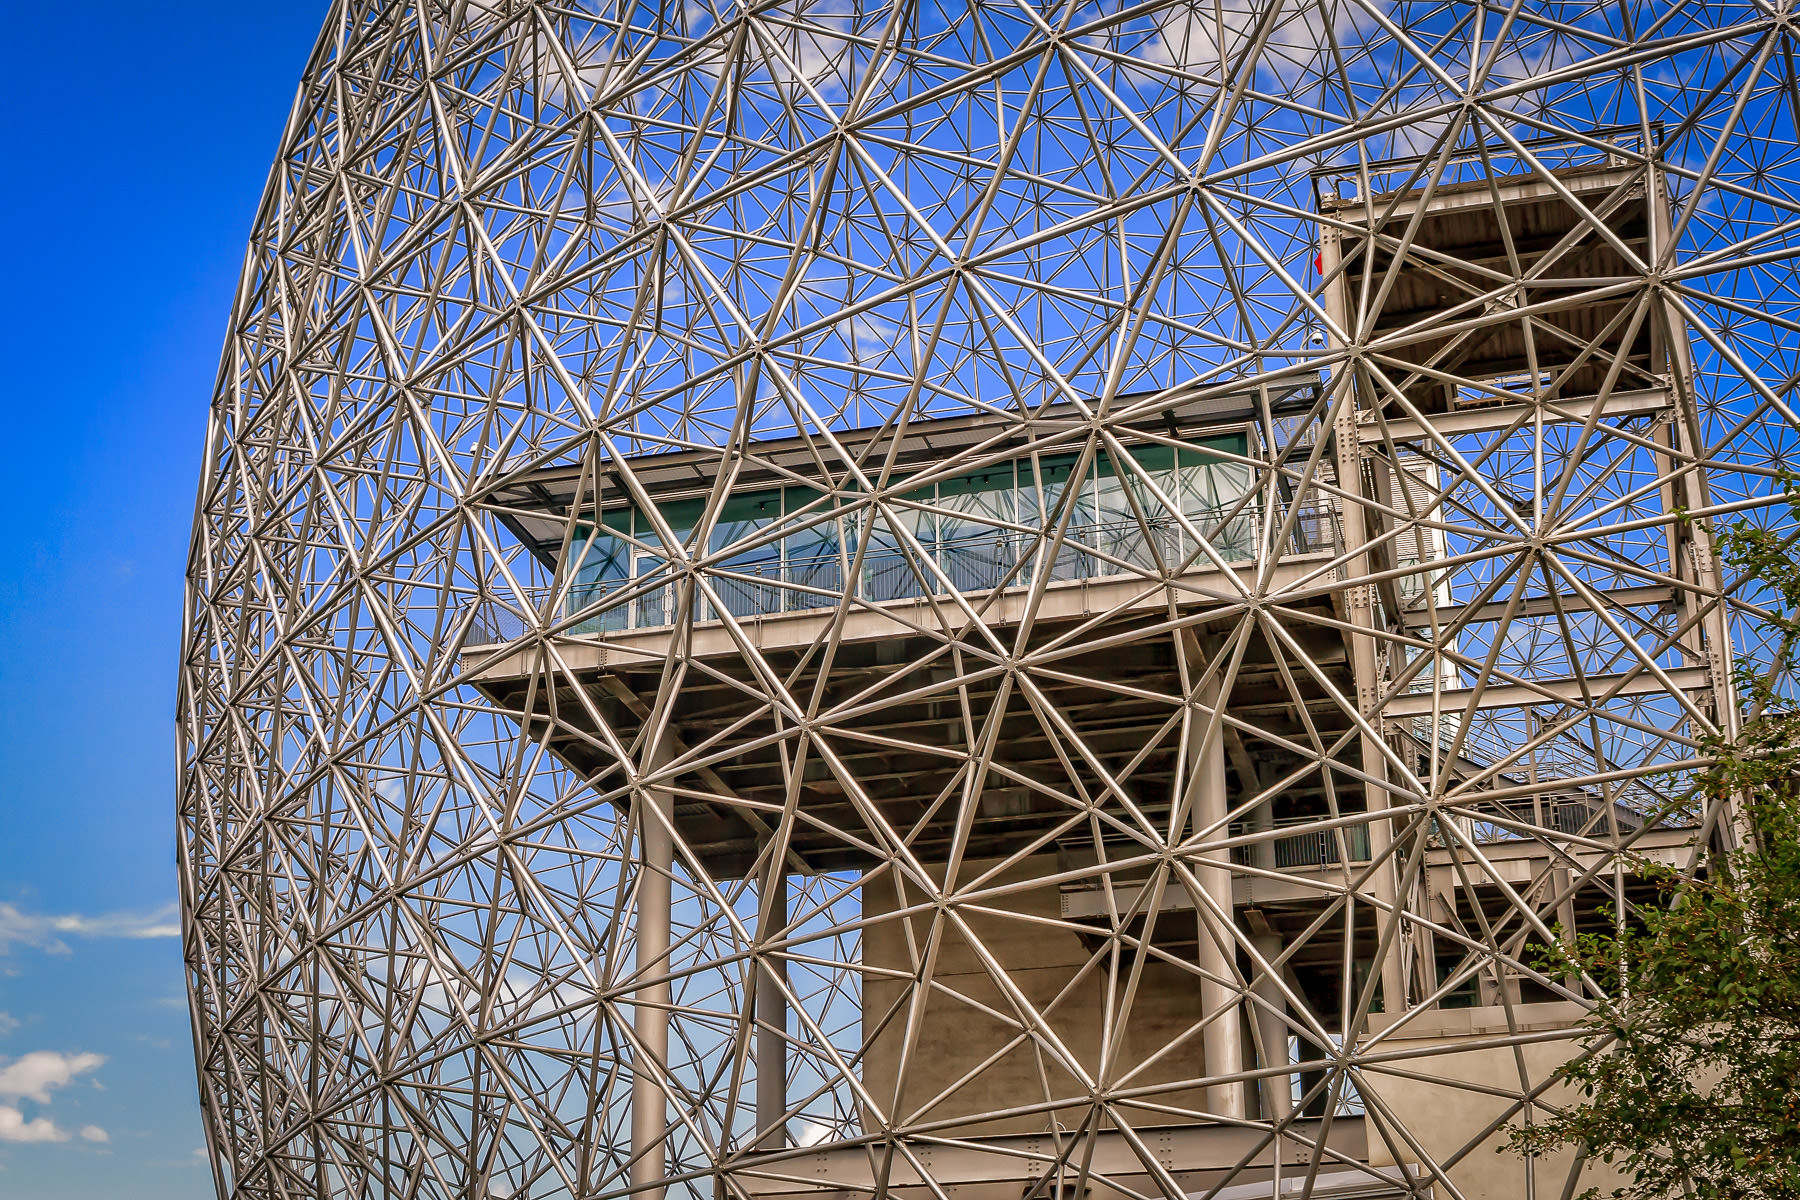 Exterior detail of Montréal's Biosphére, the re-purposed Buckminster Fuller-designed Expo 67 United States Pavilion.